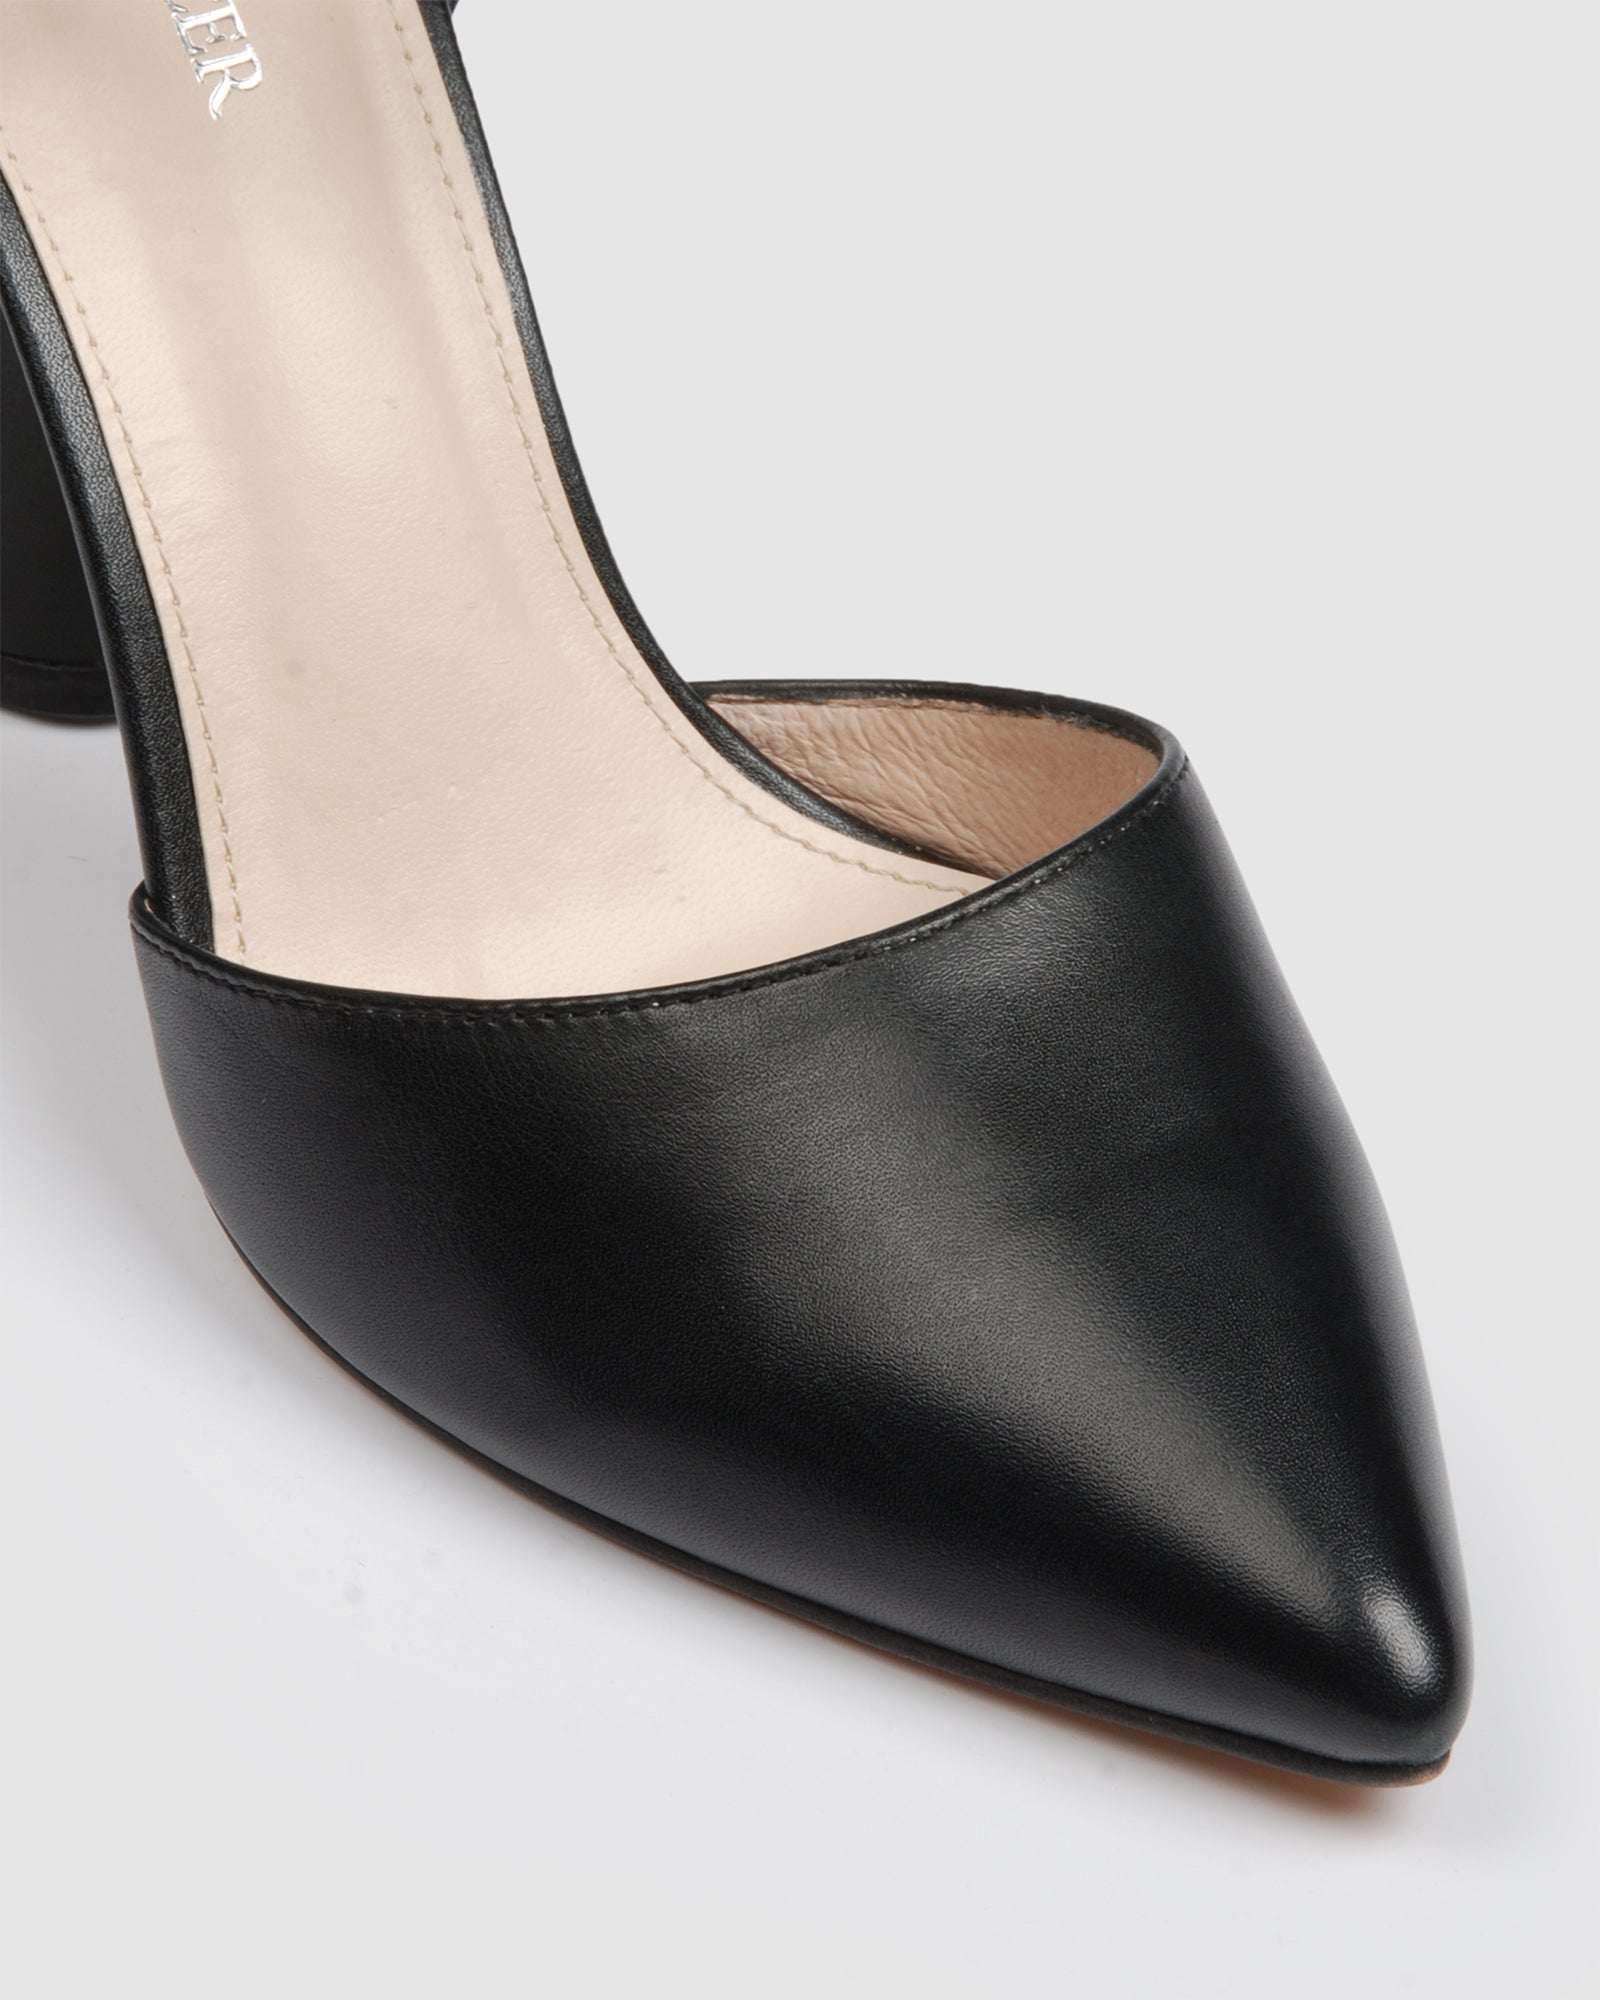 EASTBOUND HIGH HEELS BLACK LEATHER